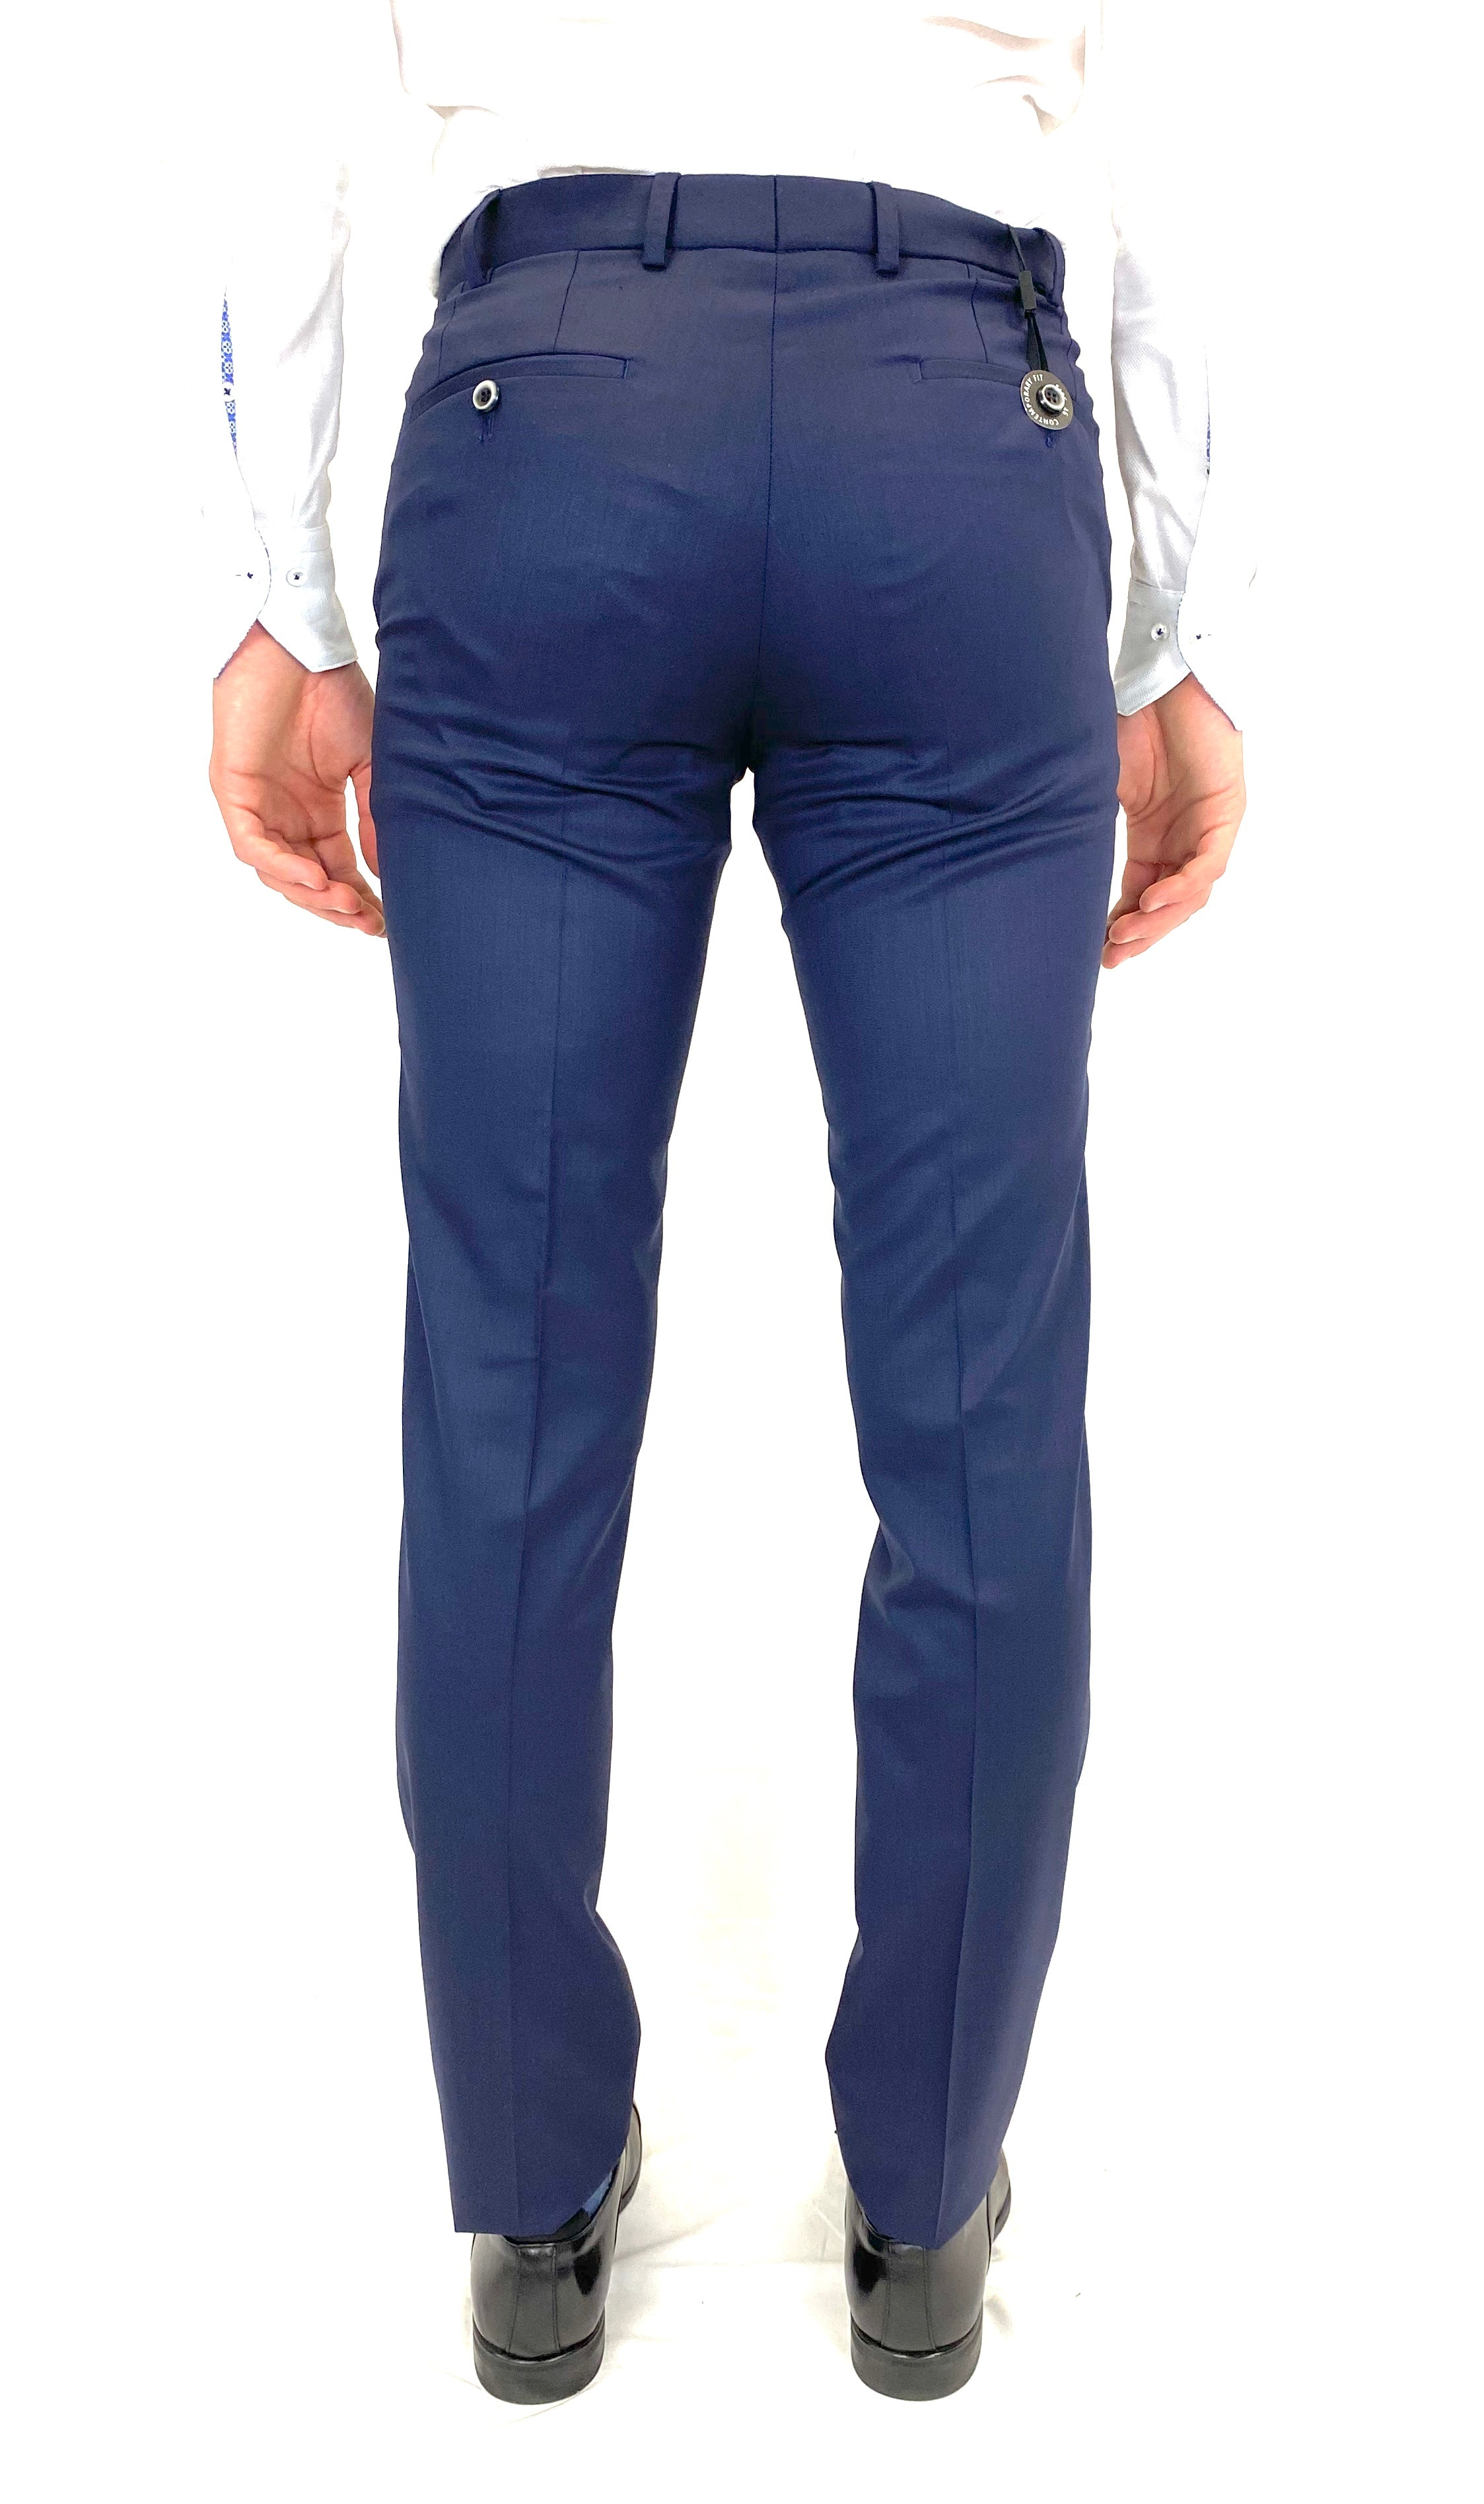 Hiltl Contemporary Fit Dress Pant in Navy